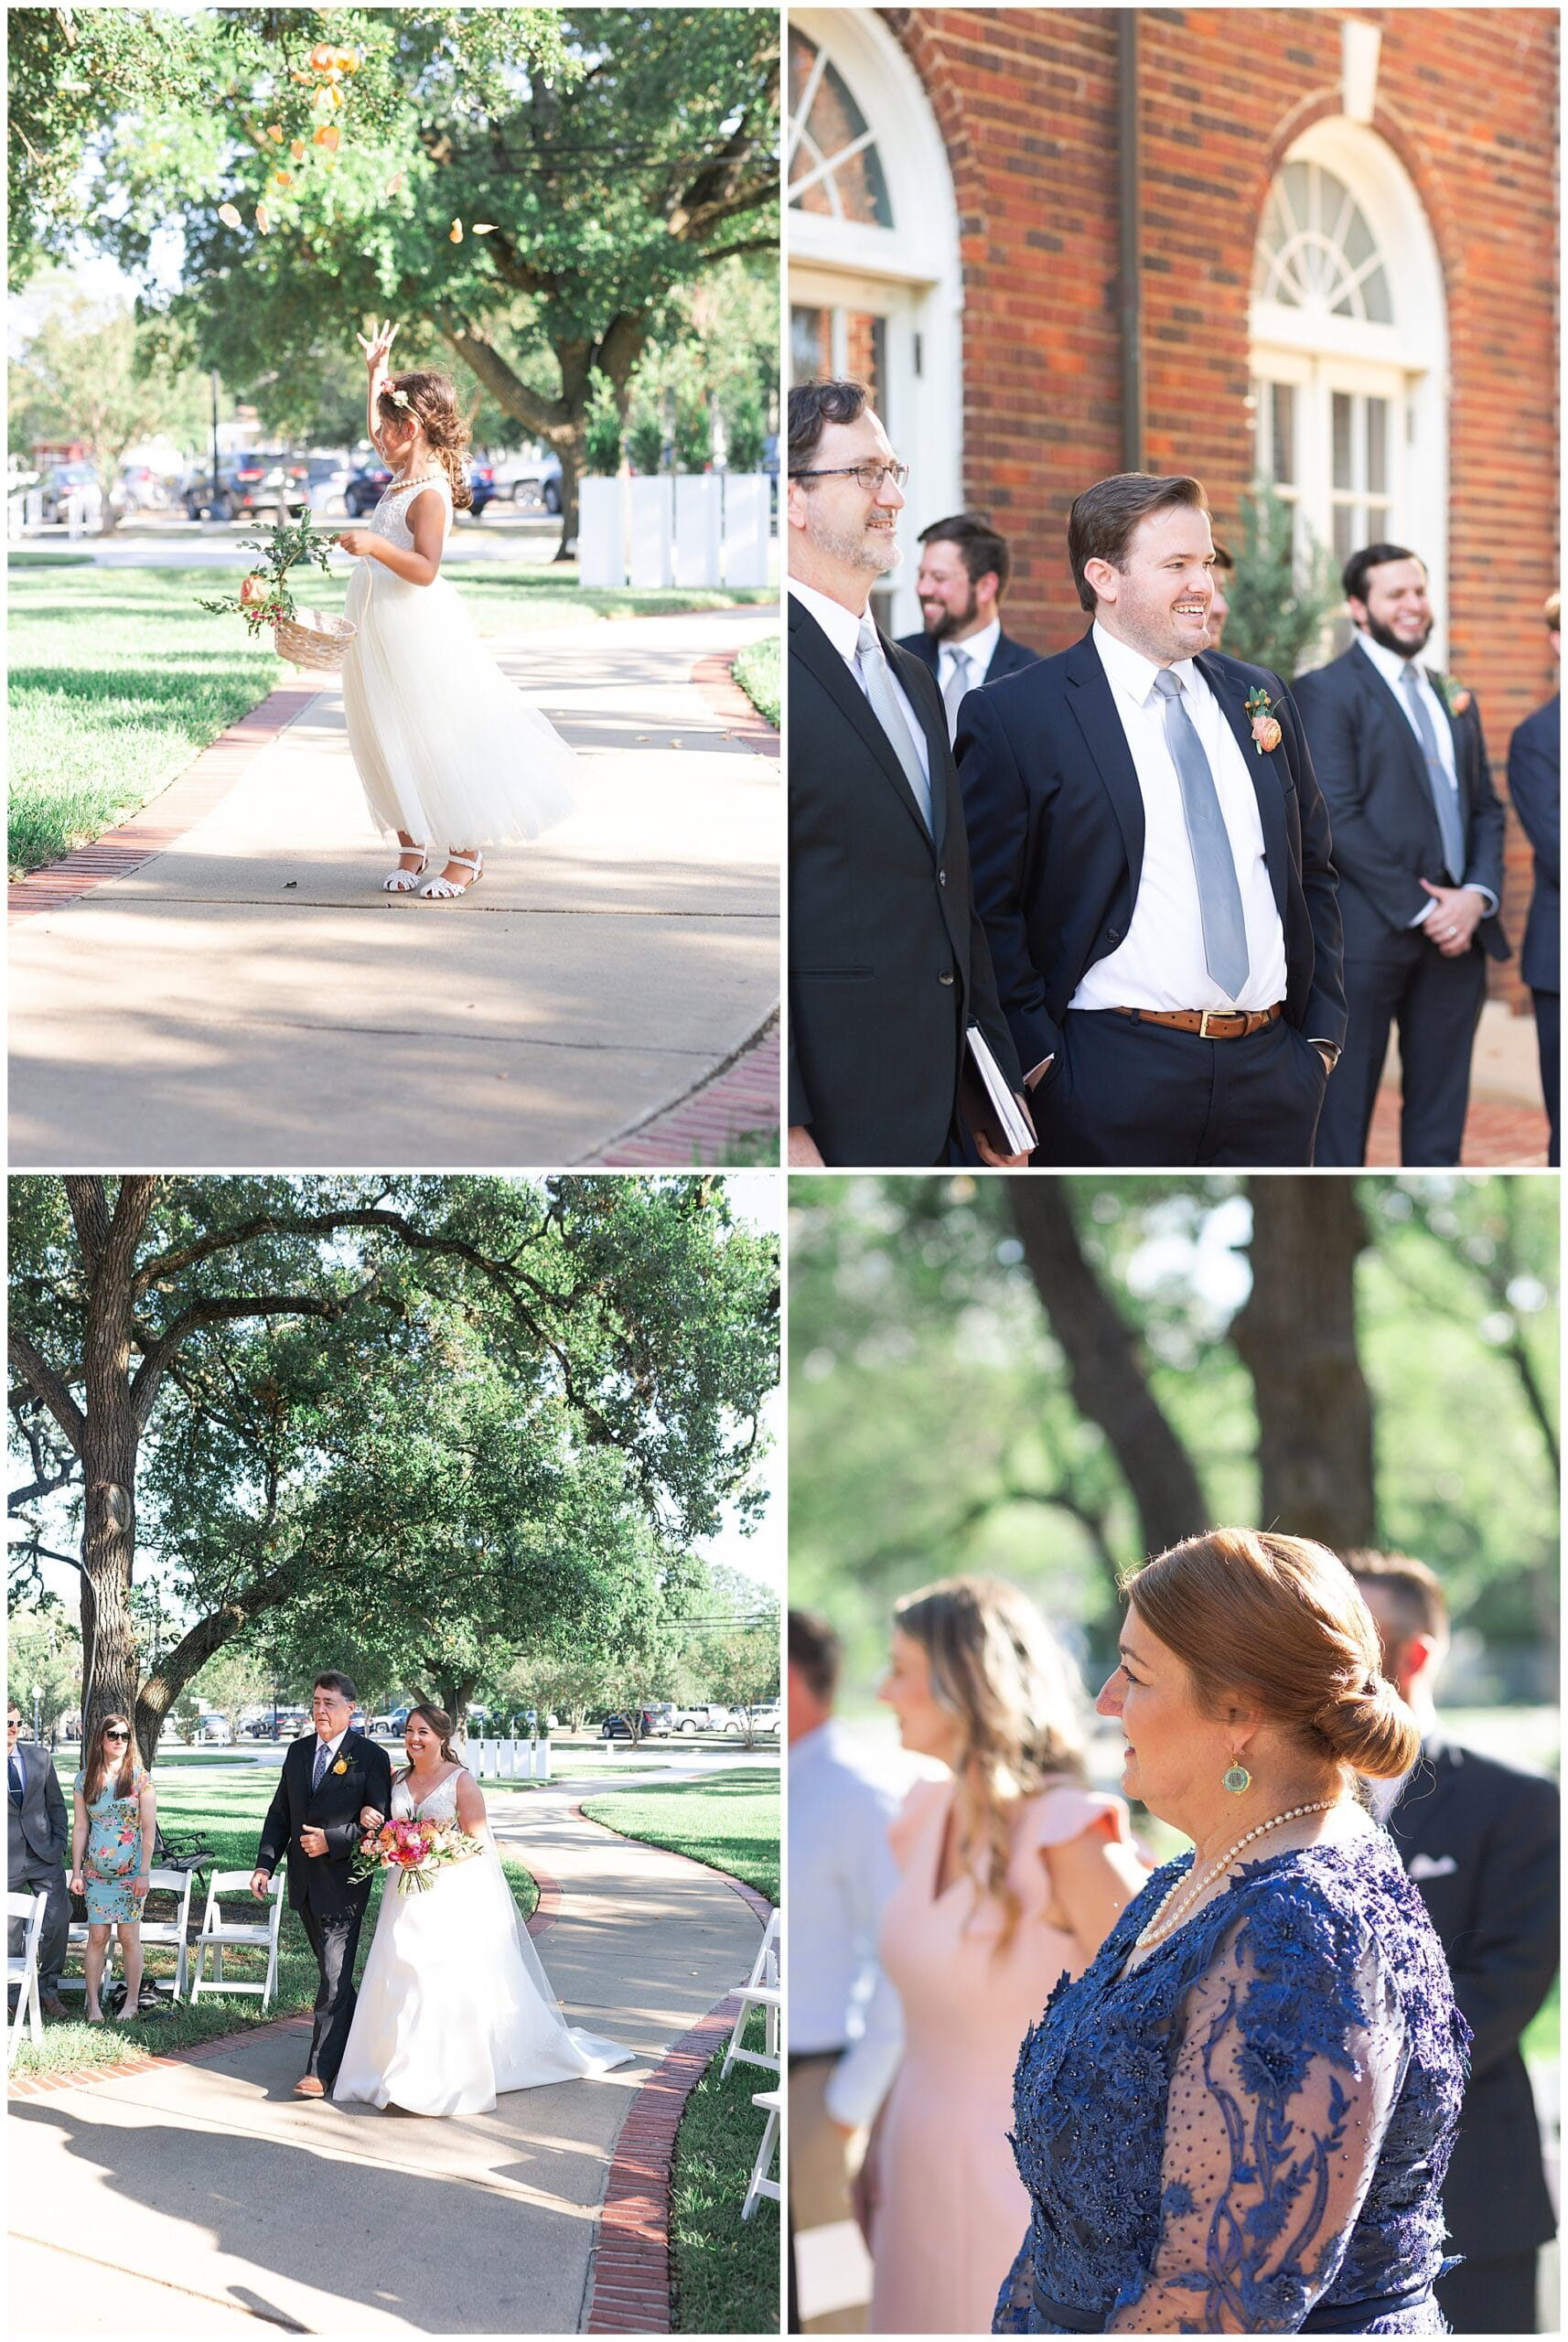 wedding ceremony walk down aisle at Astin Mansion in Bryan Texas by Swish and Click Photography